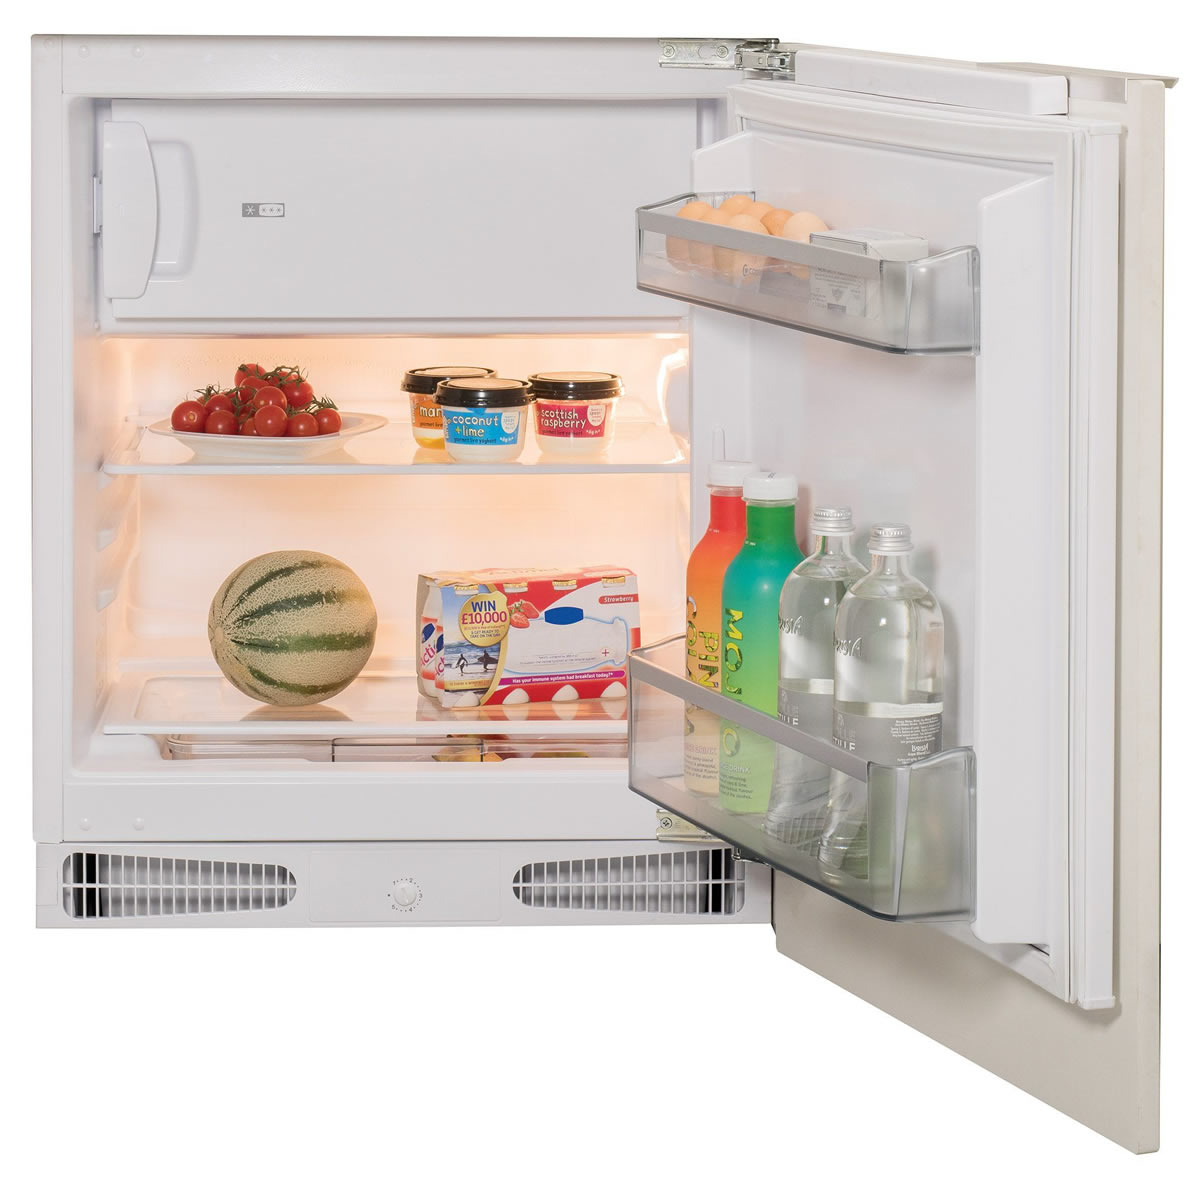 136litre Integrated Fridge Auto Defrost Class A+